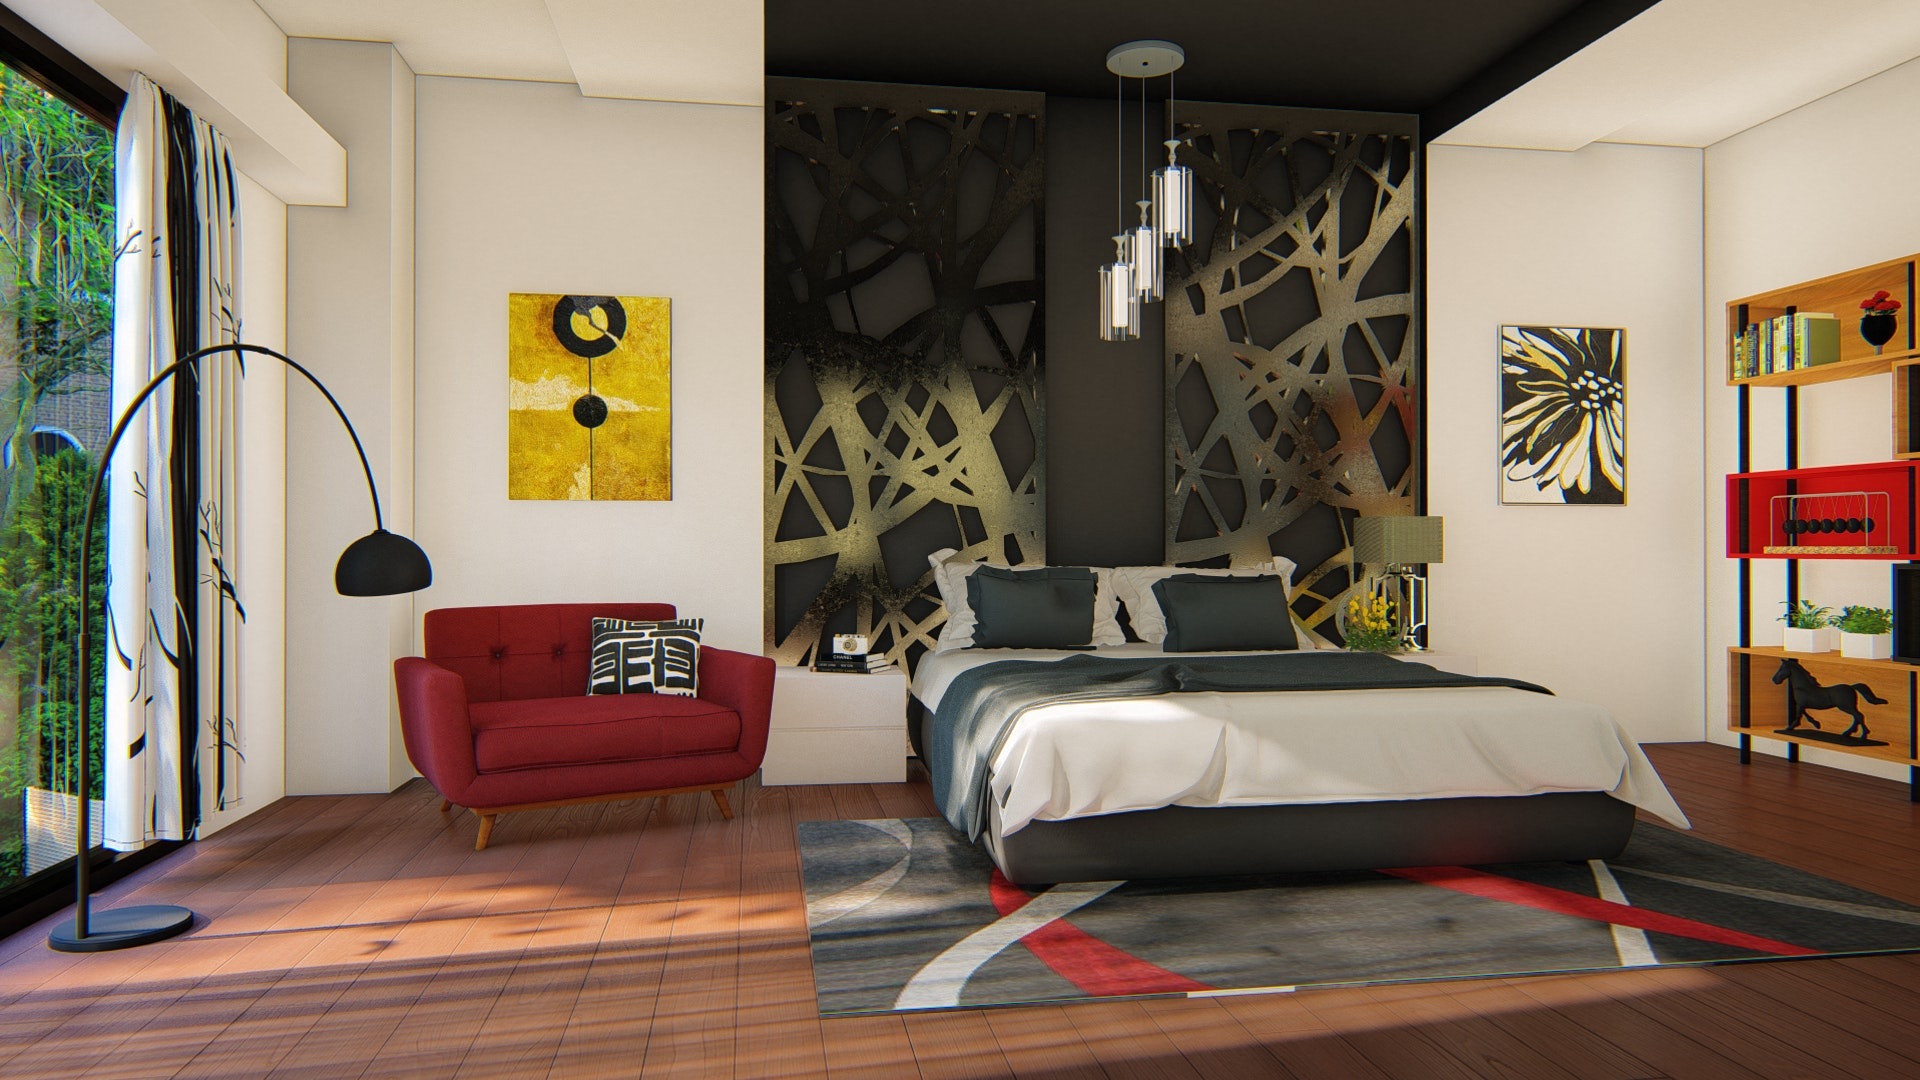 Bedroom interiorSketchup + Lumion 8 | Architecture